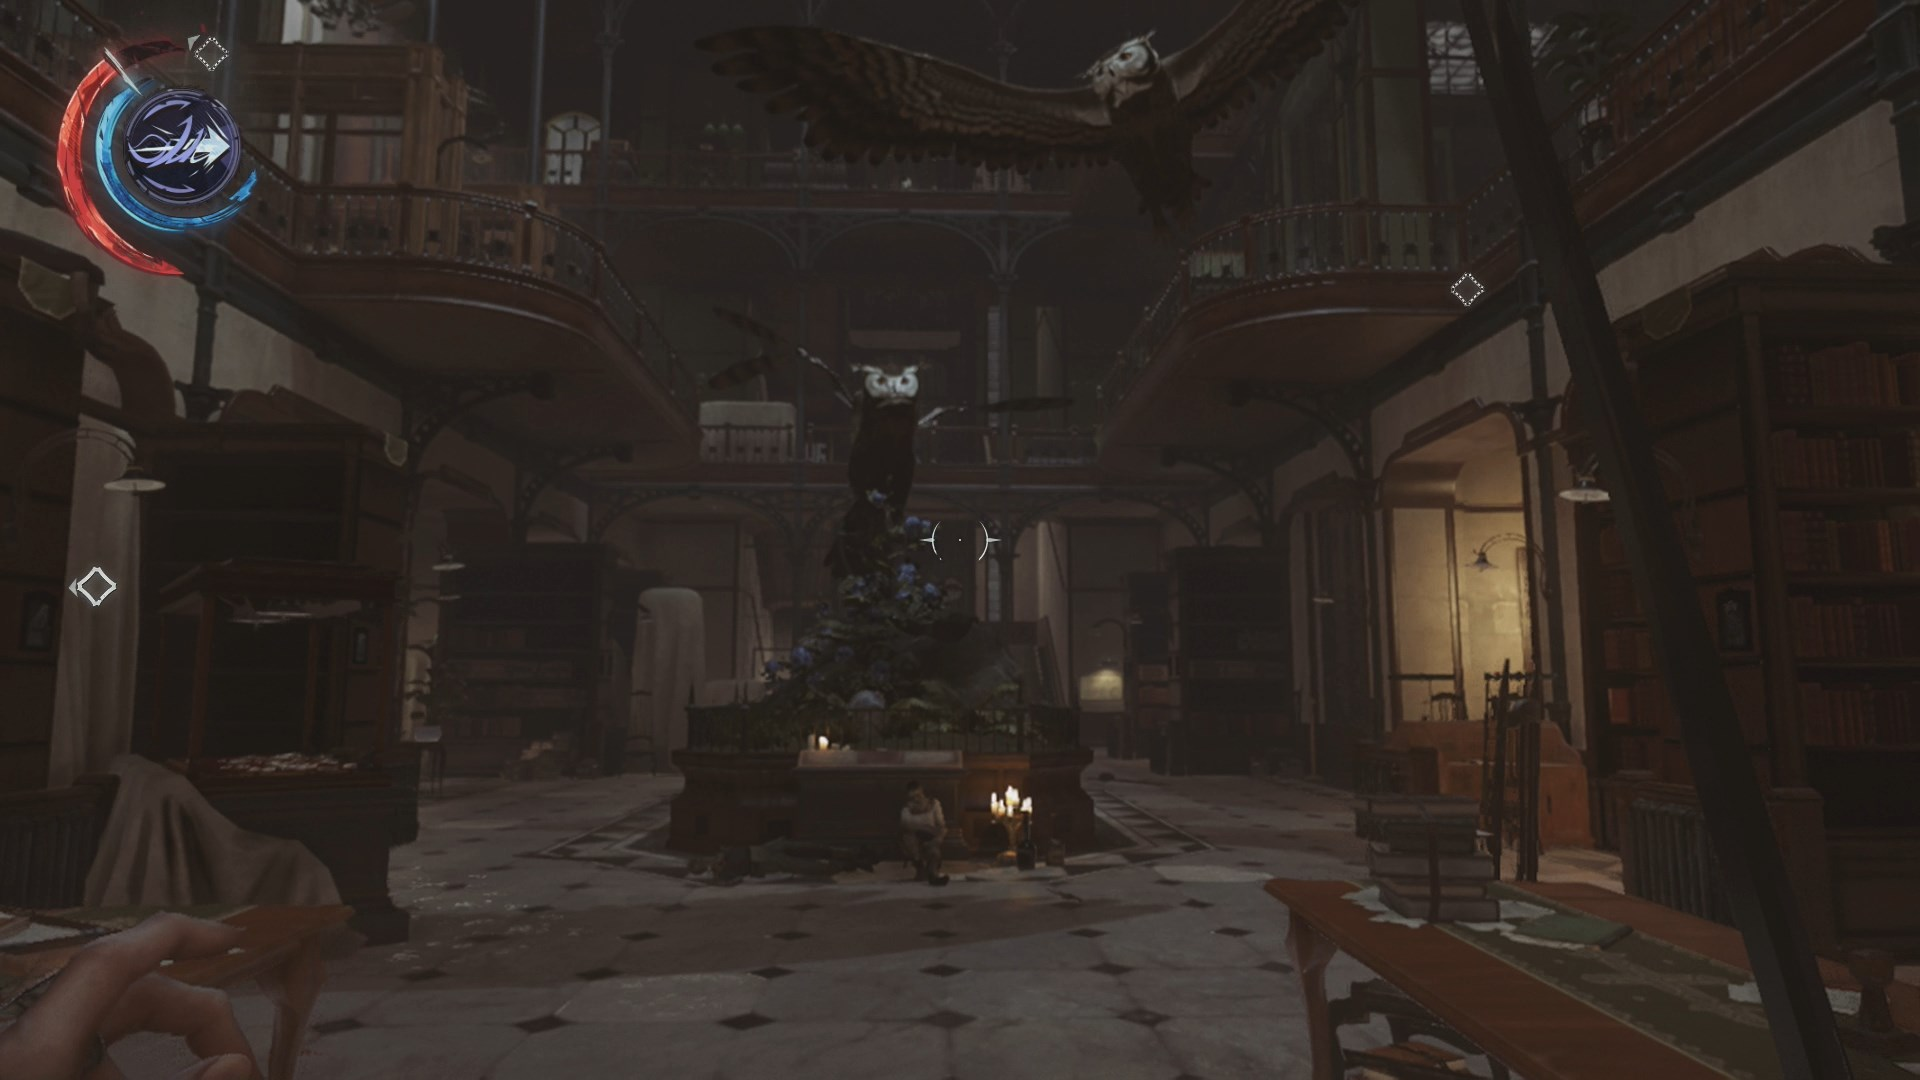 Dishonored 2 Mission 5 Blueprint #2